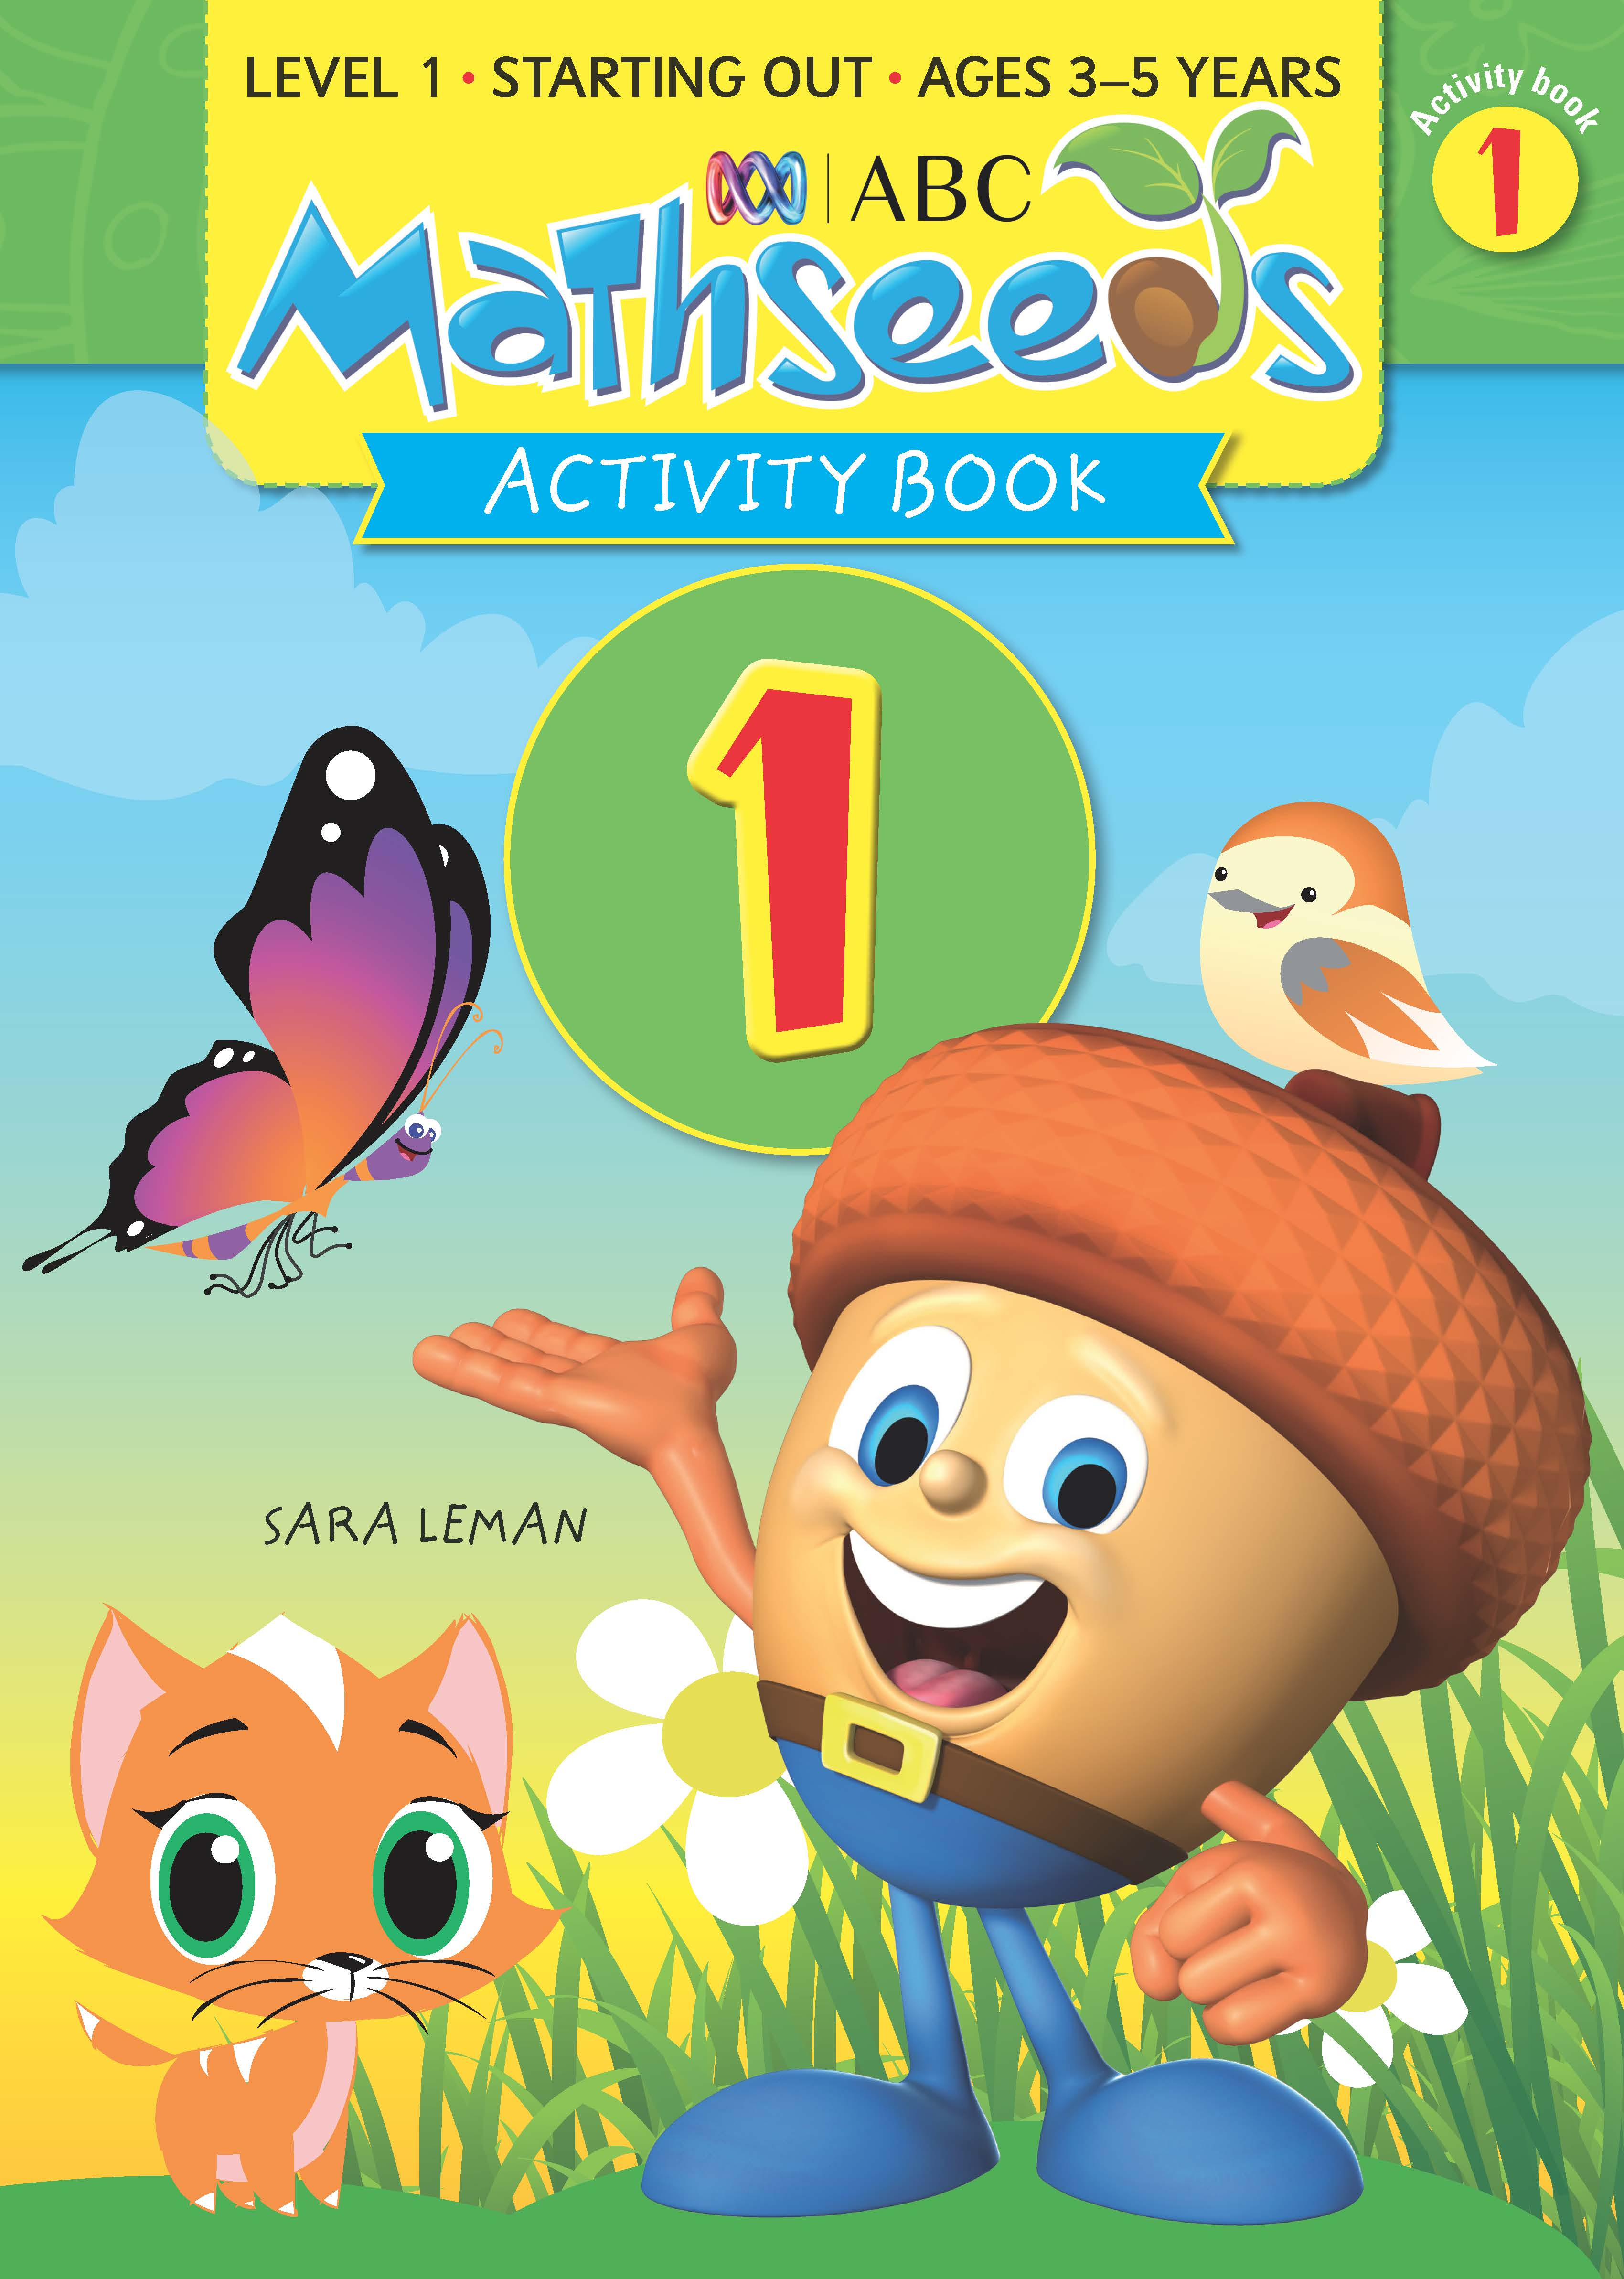 ABC Mathseeds Activity Book 1 Level 1 Ages 3-5